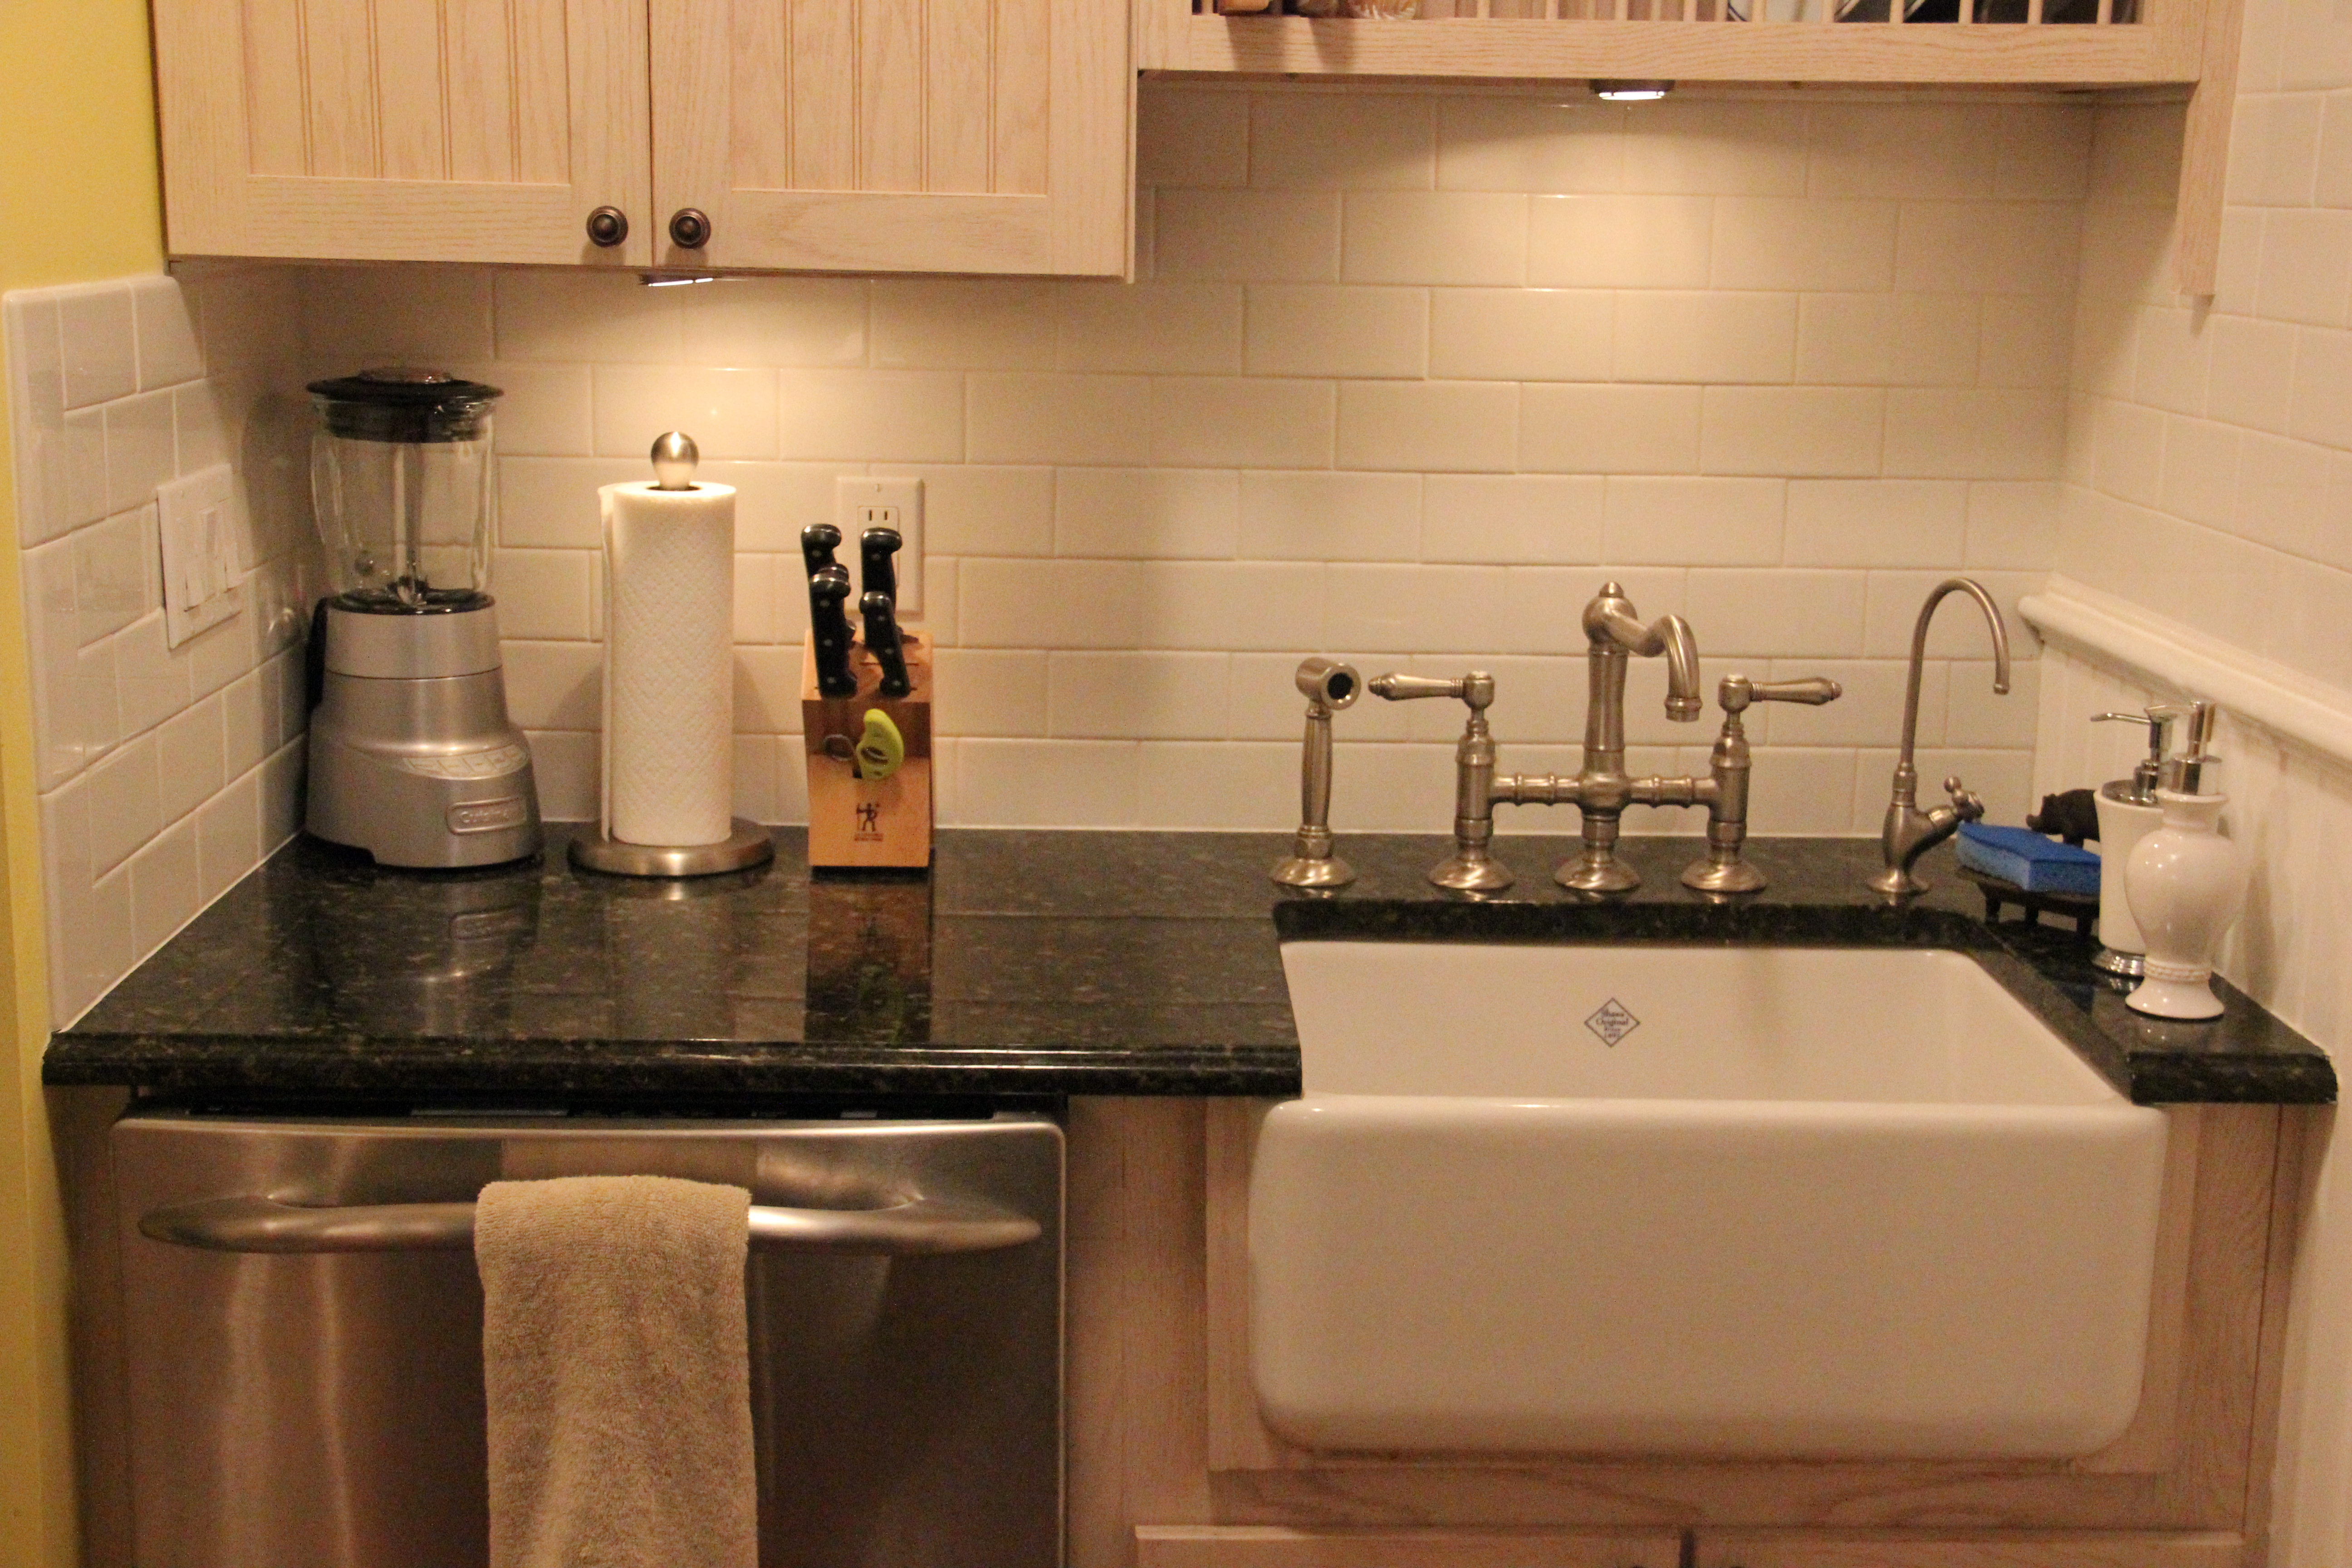 Kitchen remodel in Hastings, NY - Bruzzese Home Improvements